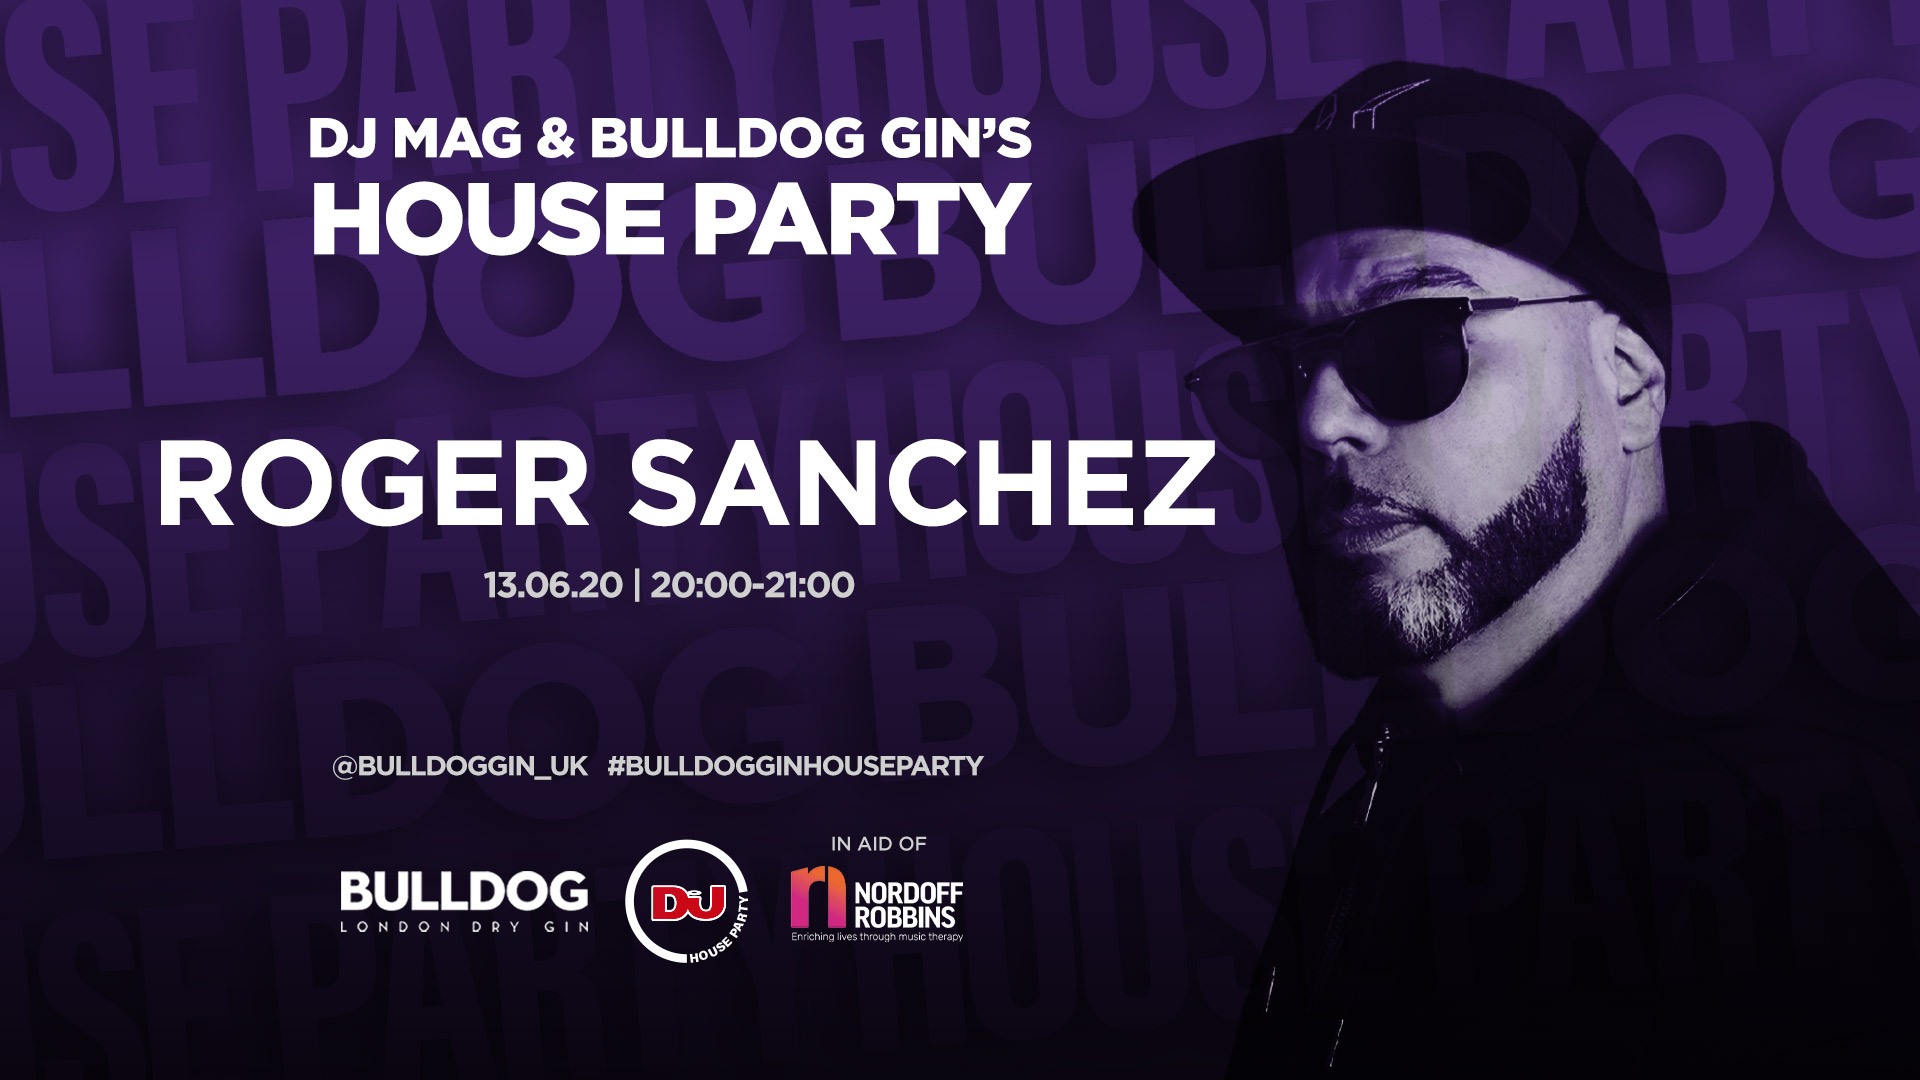 Dj Mag & Bulldog Gin Announce House Party Live Stream With Roger Sanchez & More photo